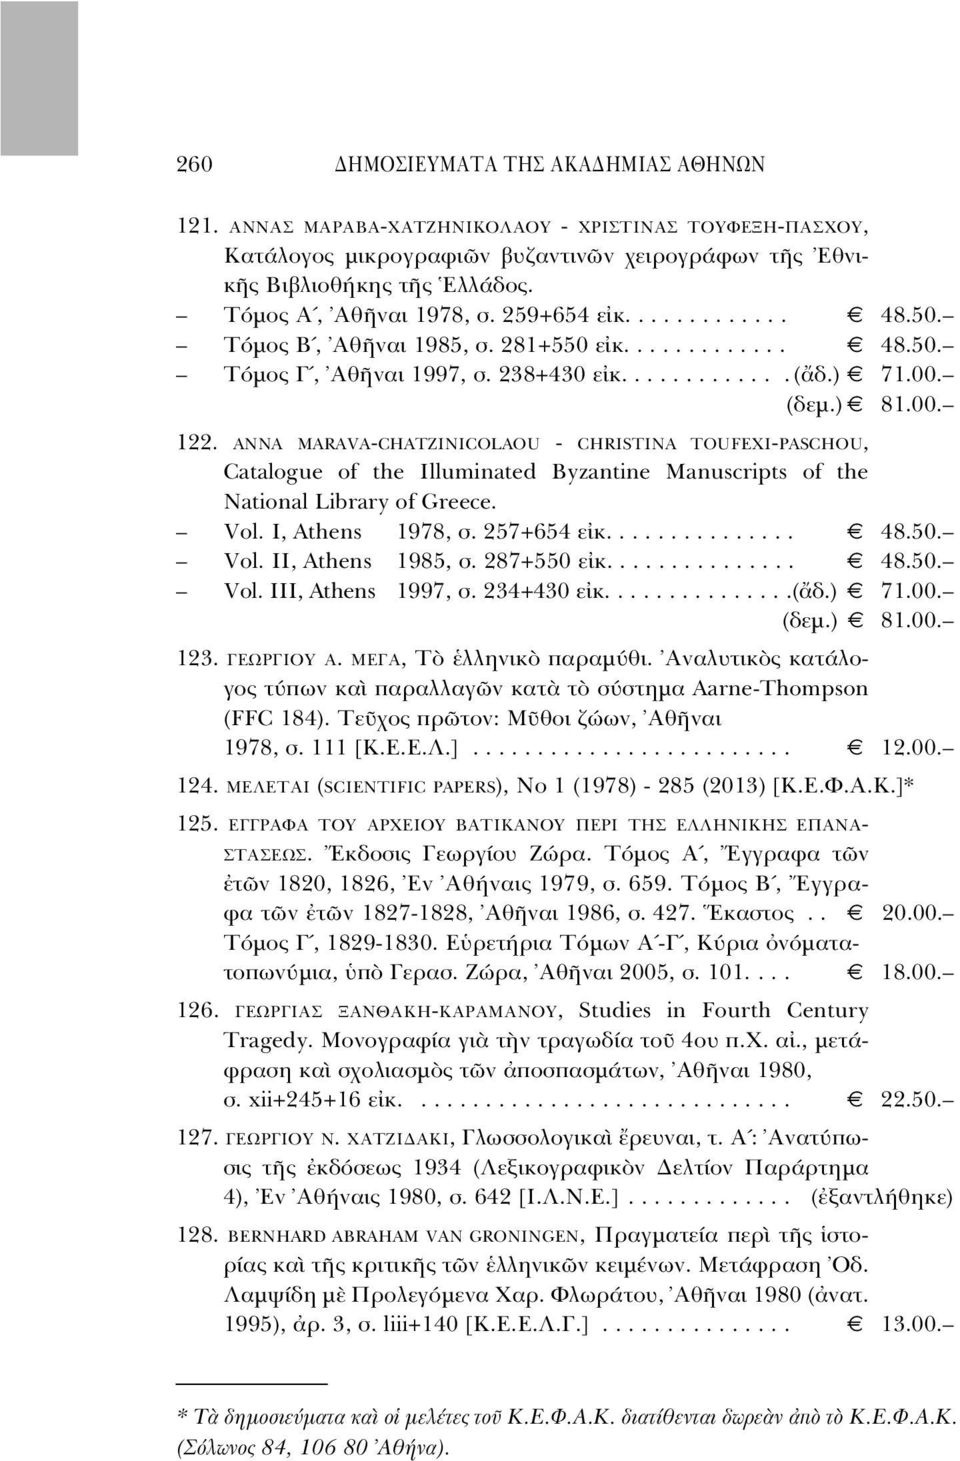 ANNA MARAVA-CHATZINICOLAOU - CHRISTINA TOUFEXI-PASCHOU, Catalogue of the Illuminated Byzantine Manuscripts of the National Library of Greece. Vol. I, Athens 1978, σ. 257+654 ε κ............... 48.50.